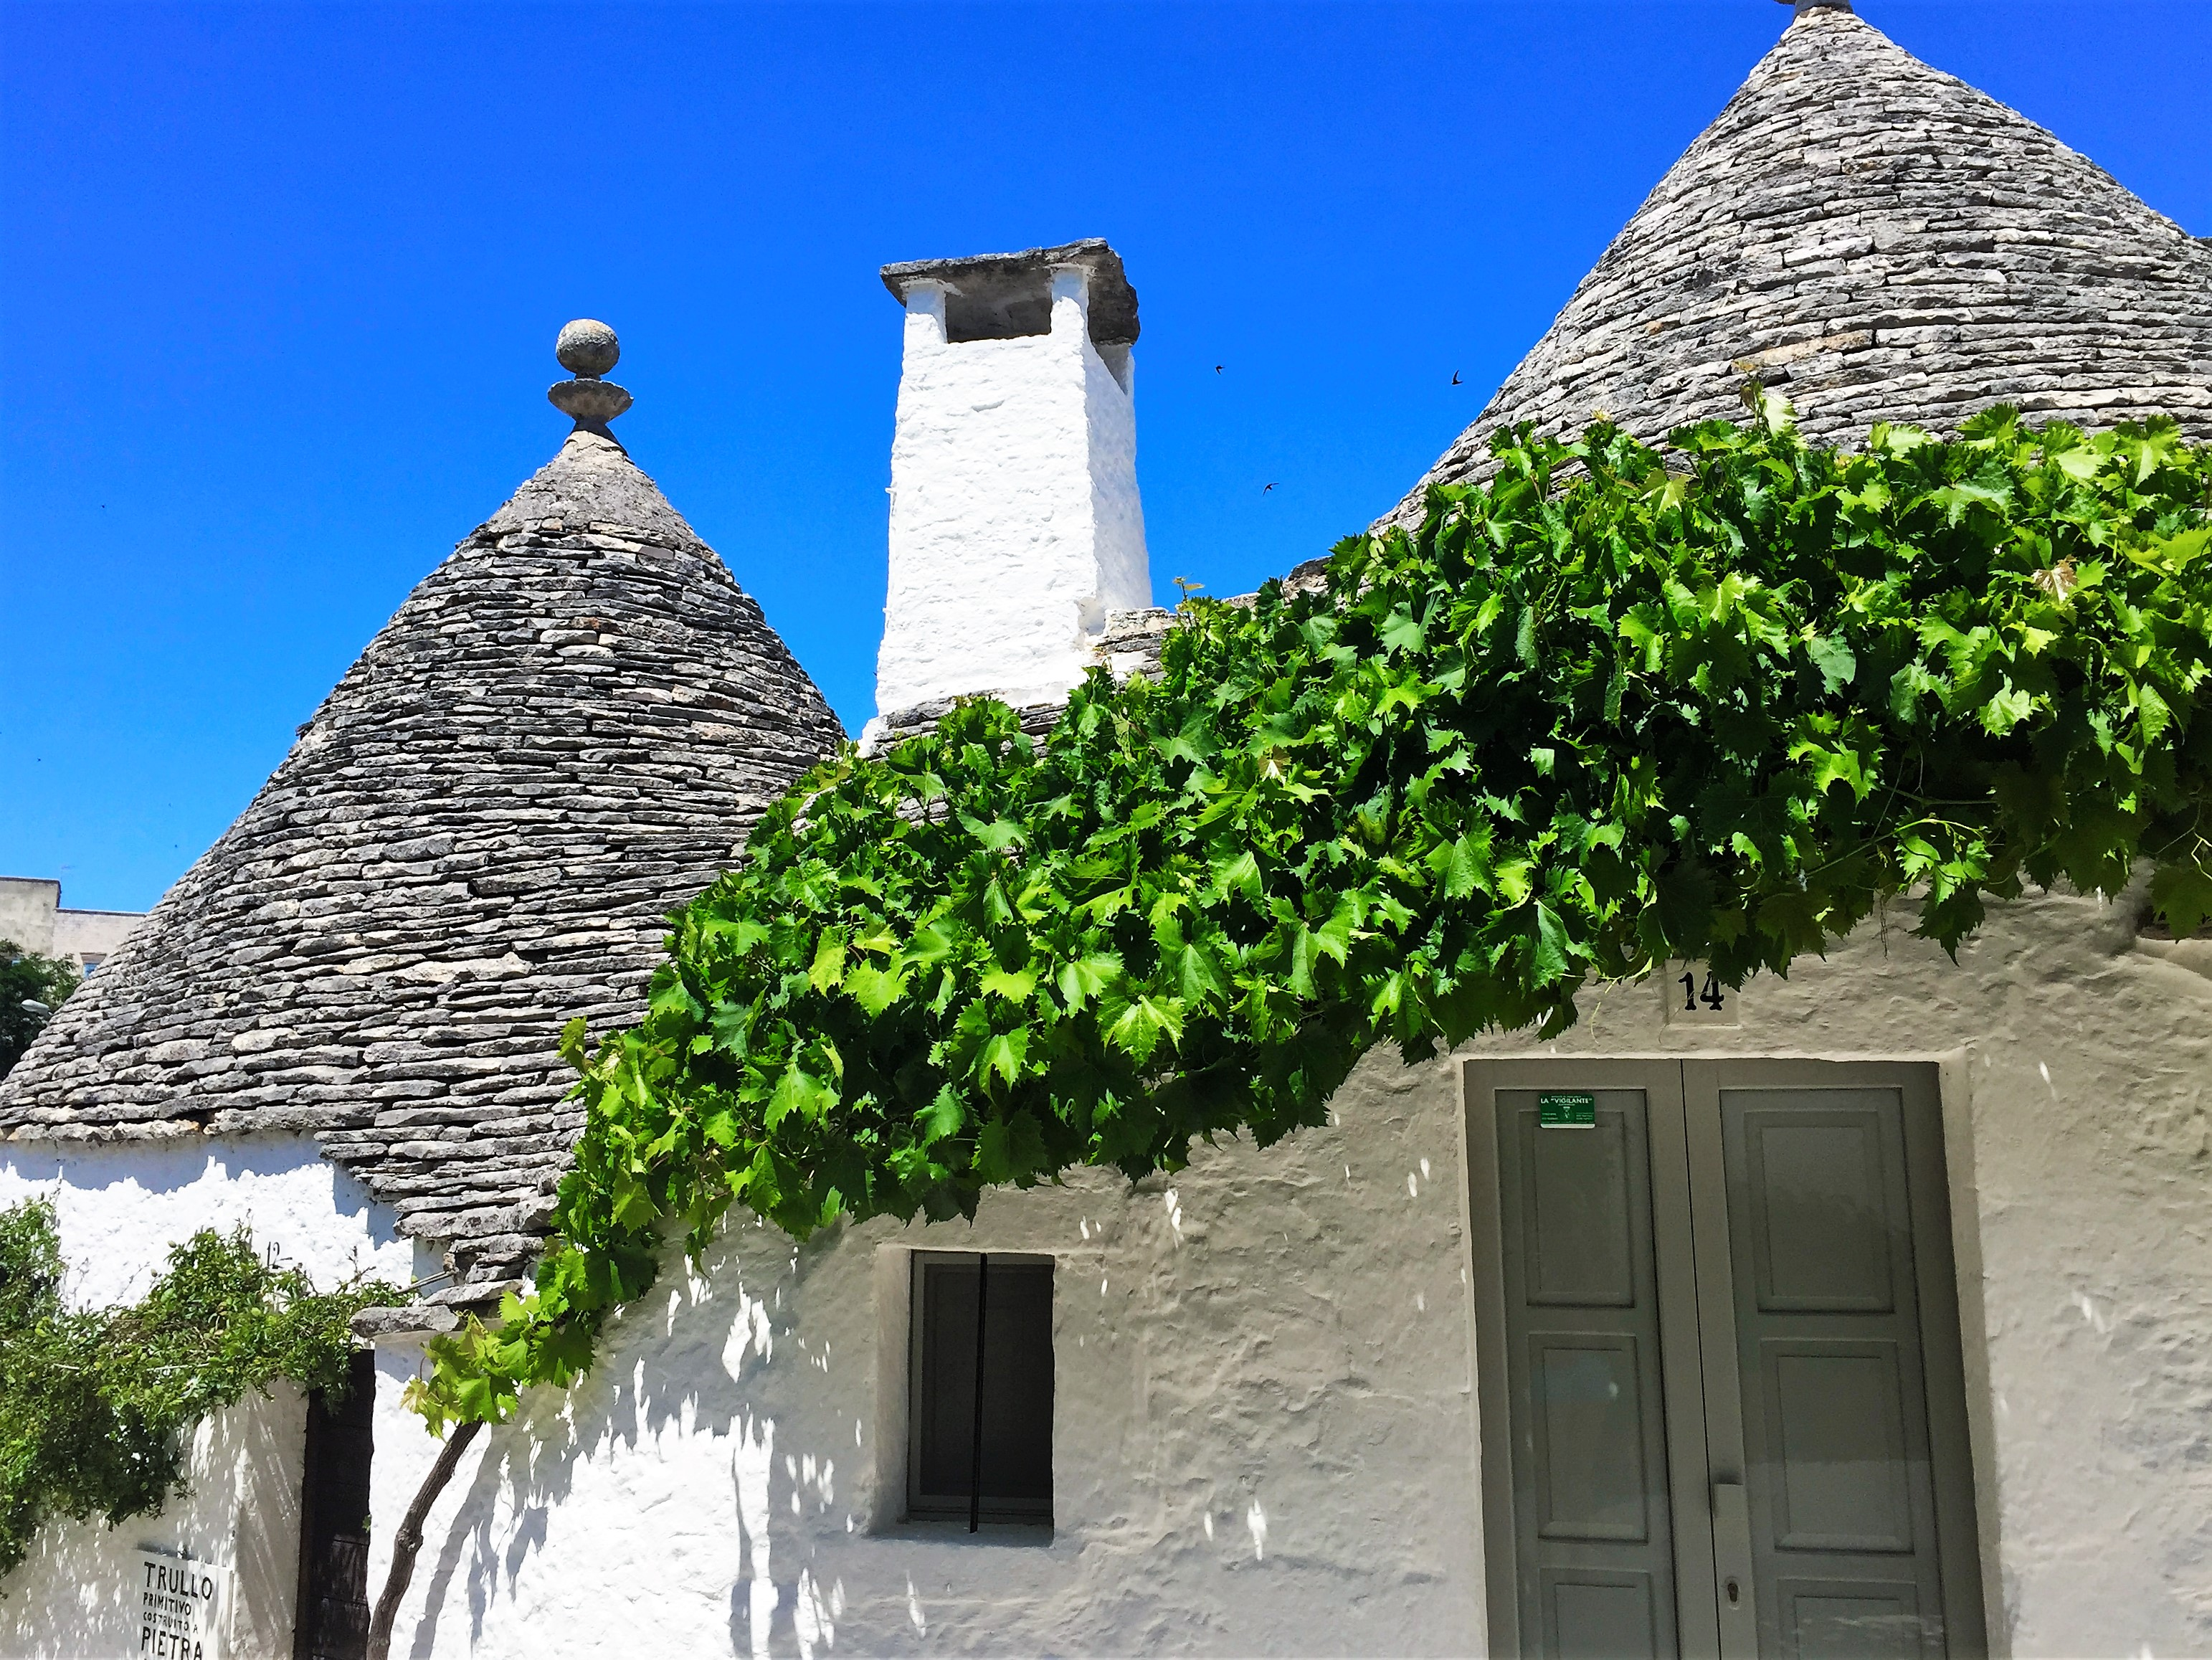 Trullis of Alberobello